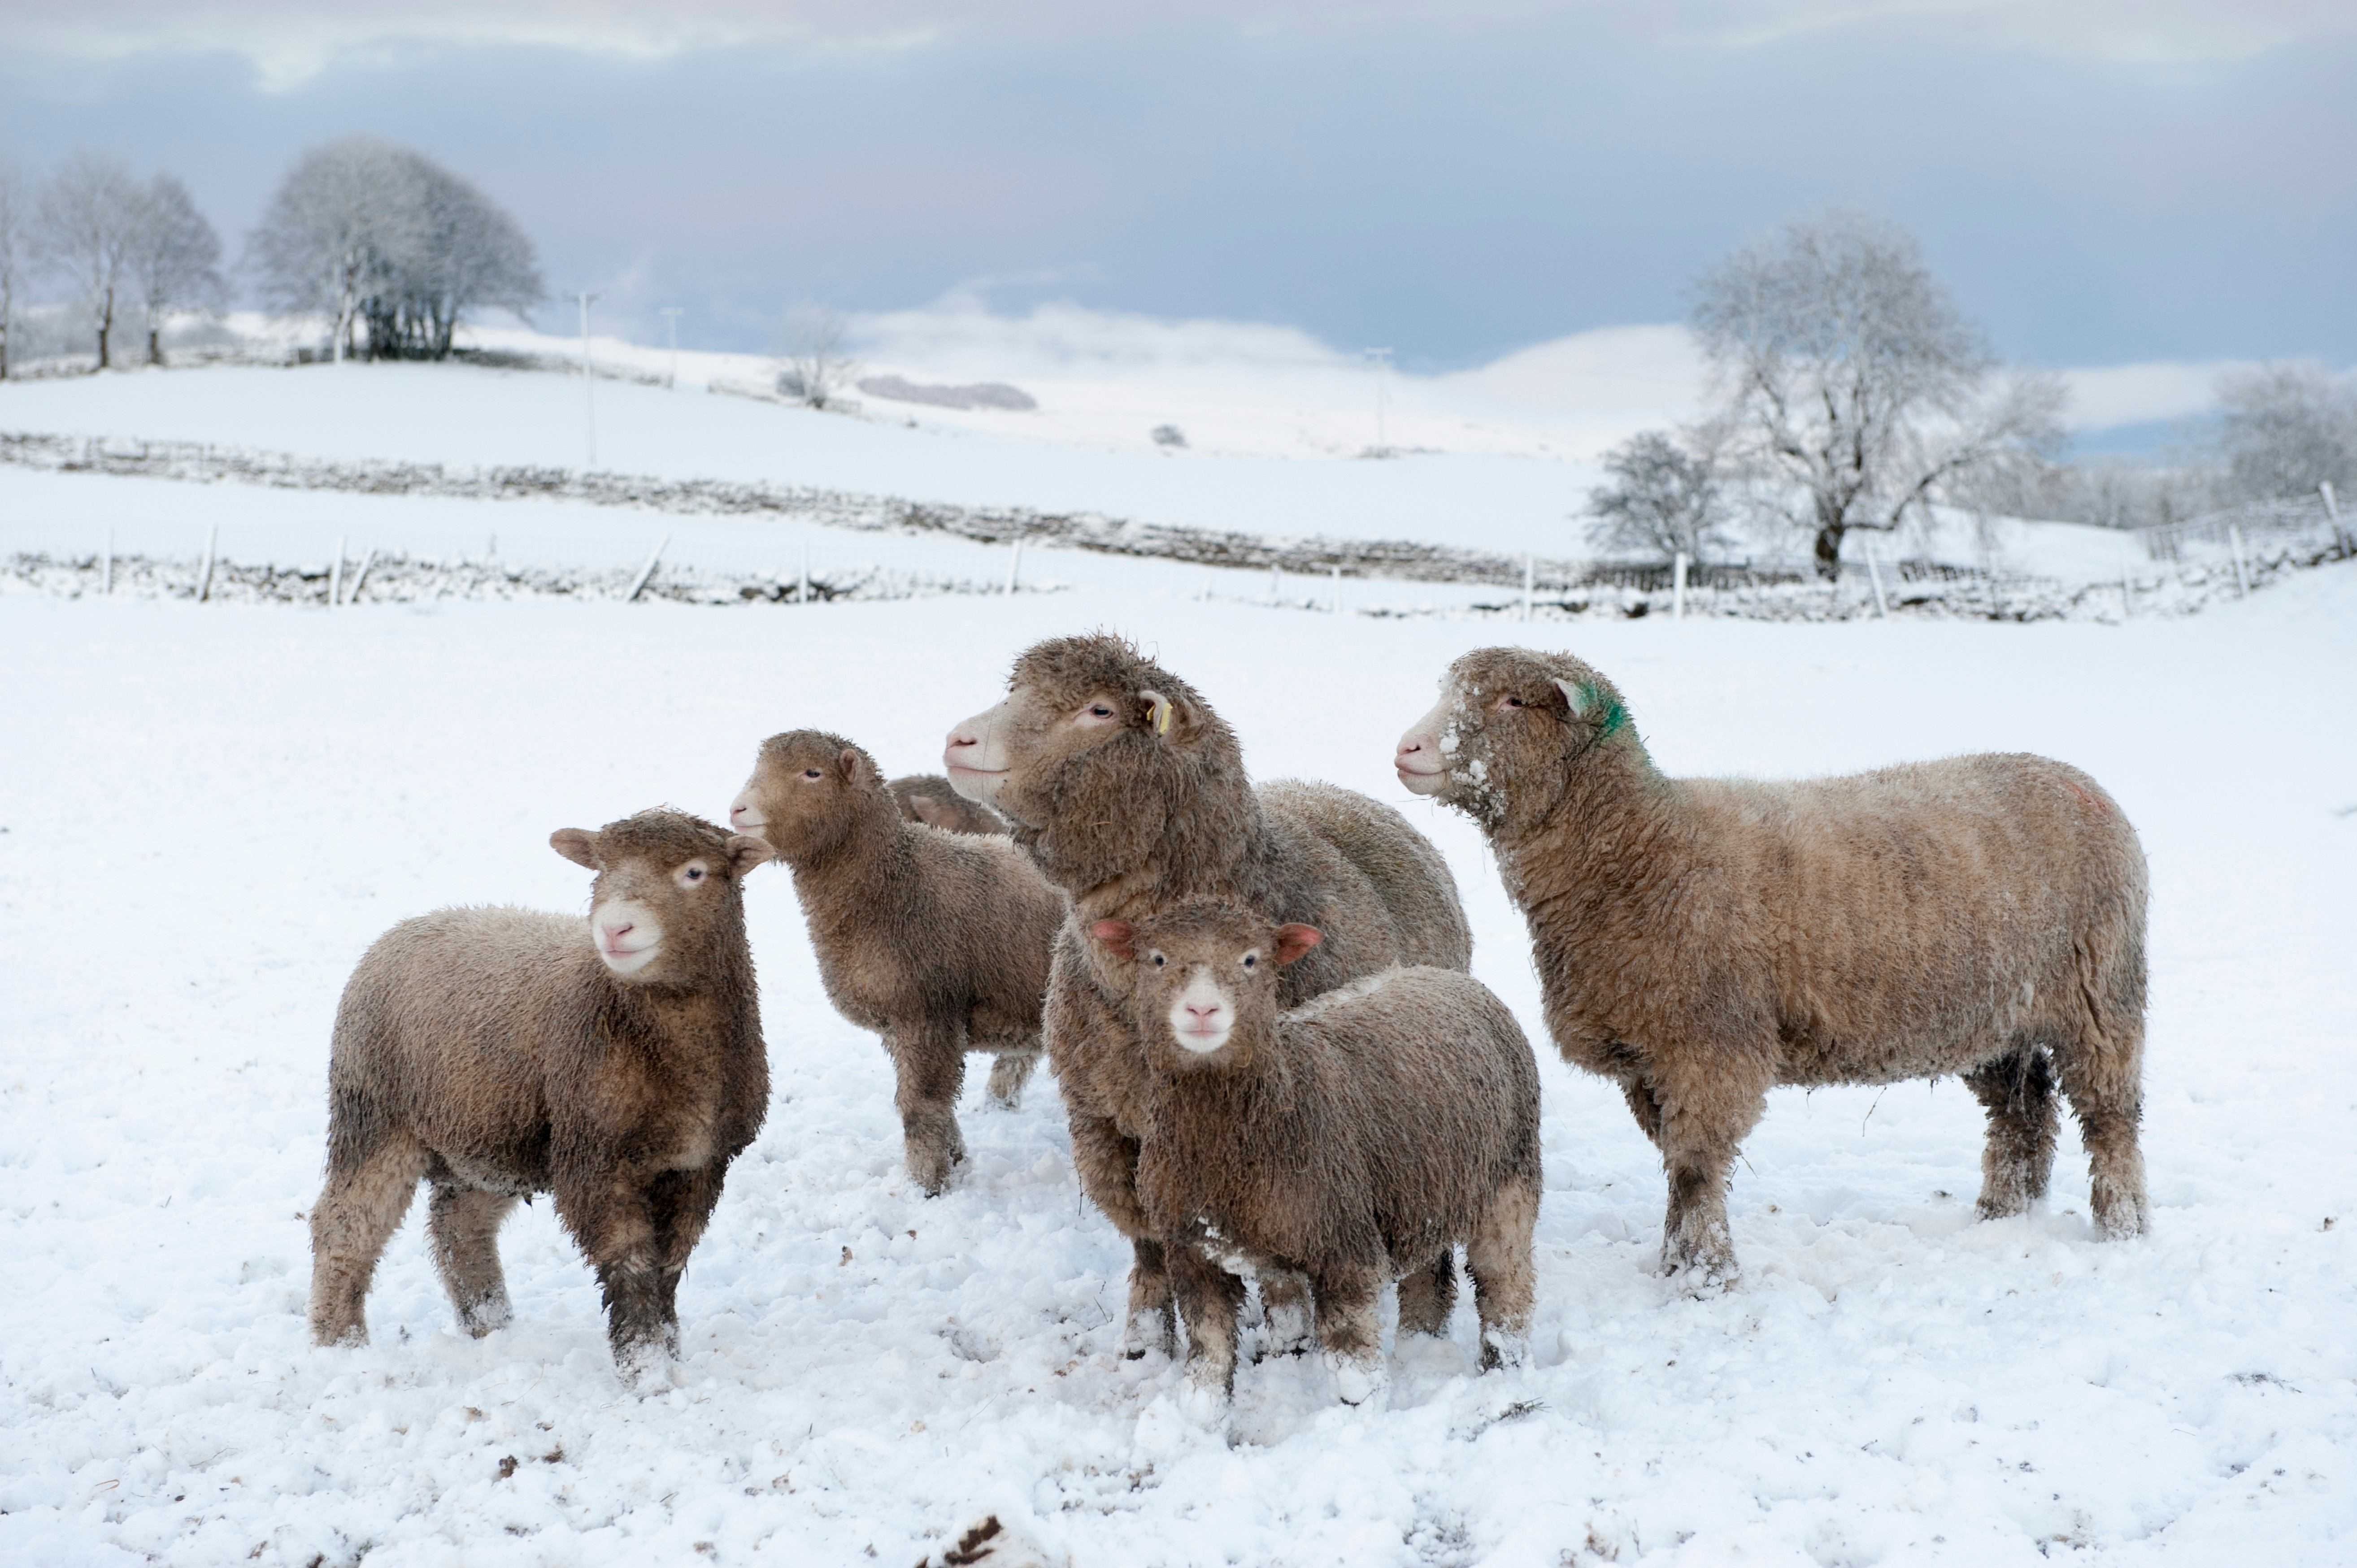 Poll Dorset sheep and their lambs braving the winter conditions, Wensleydale, UK. (Photo by: Wayne Hutchinson/Farm Images/UIG via Getty Images)